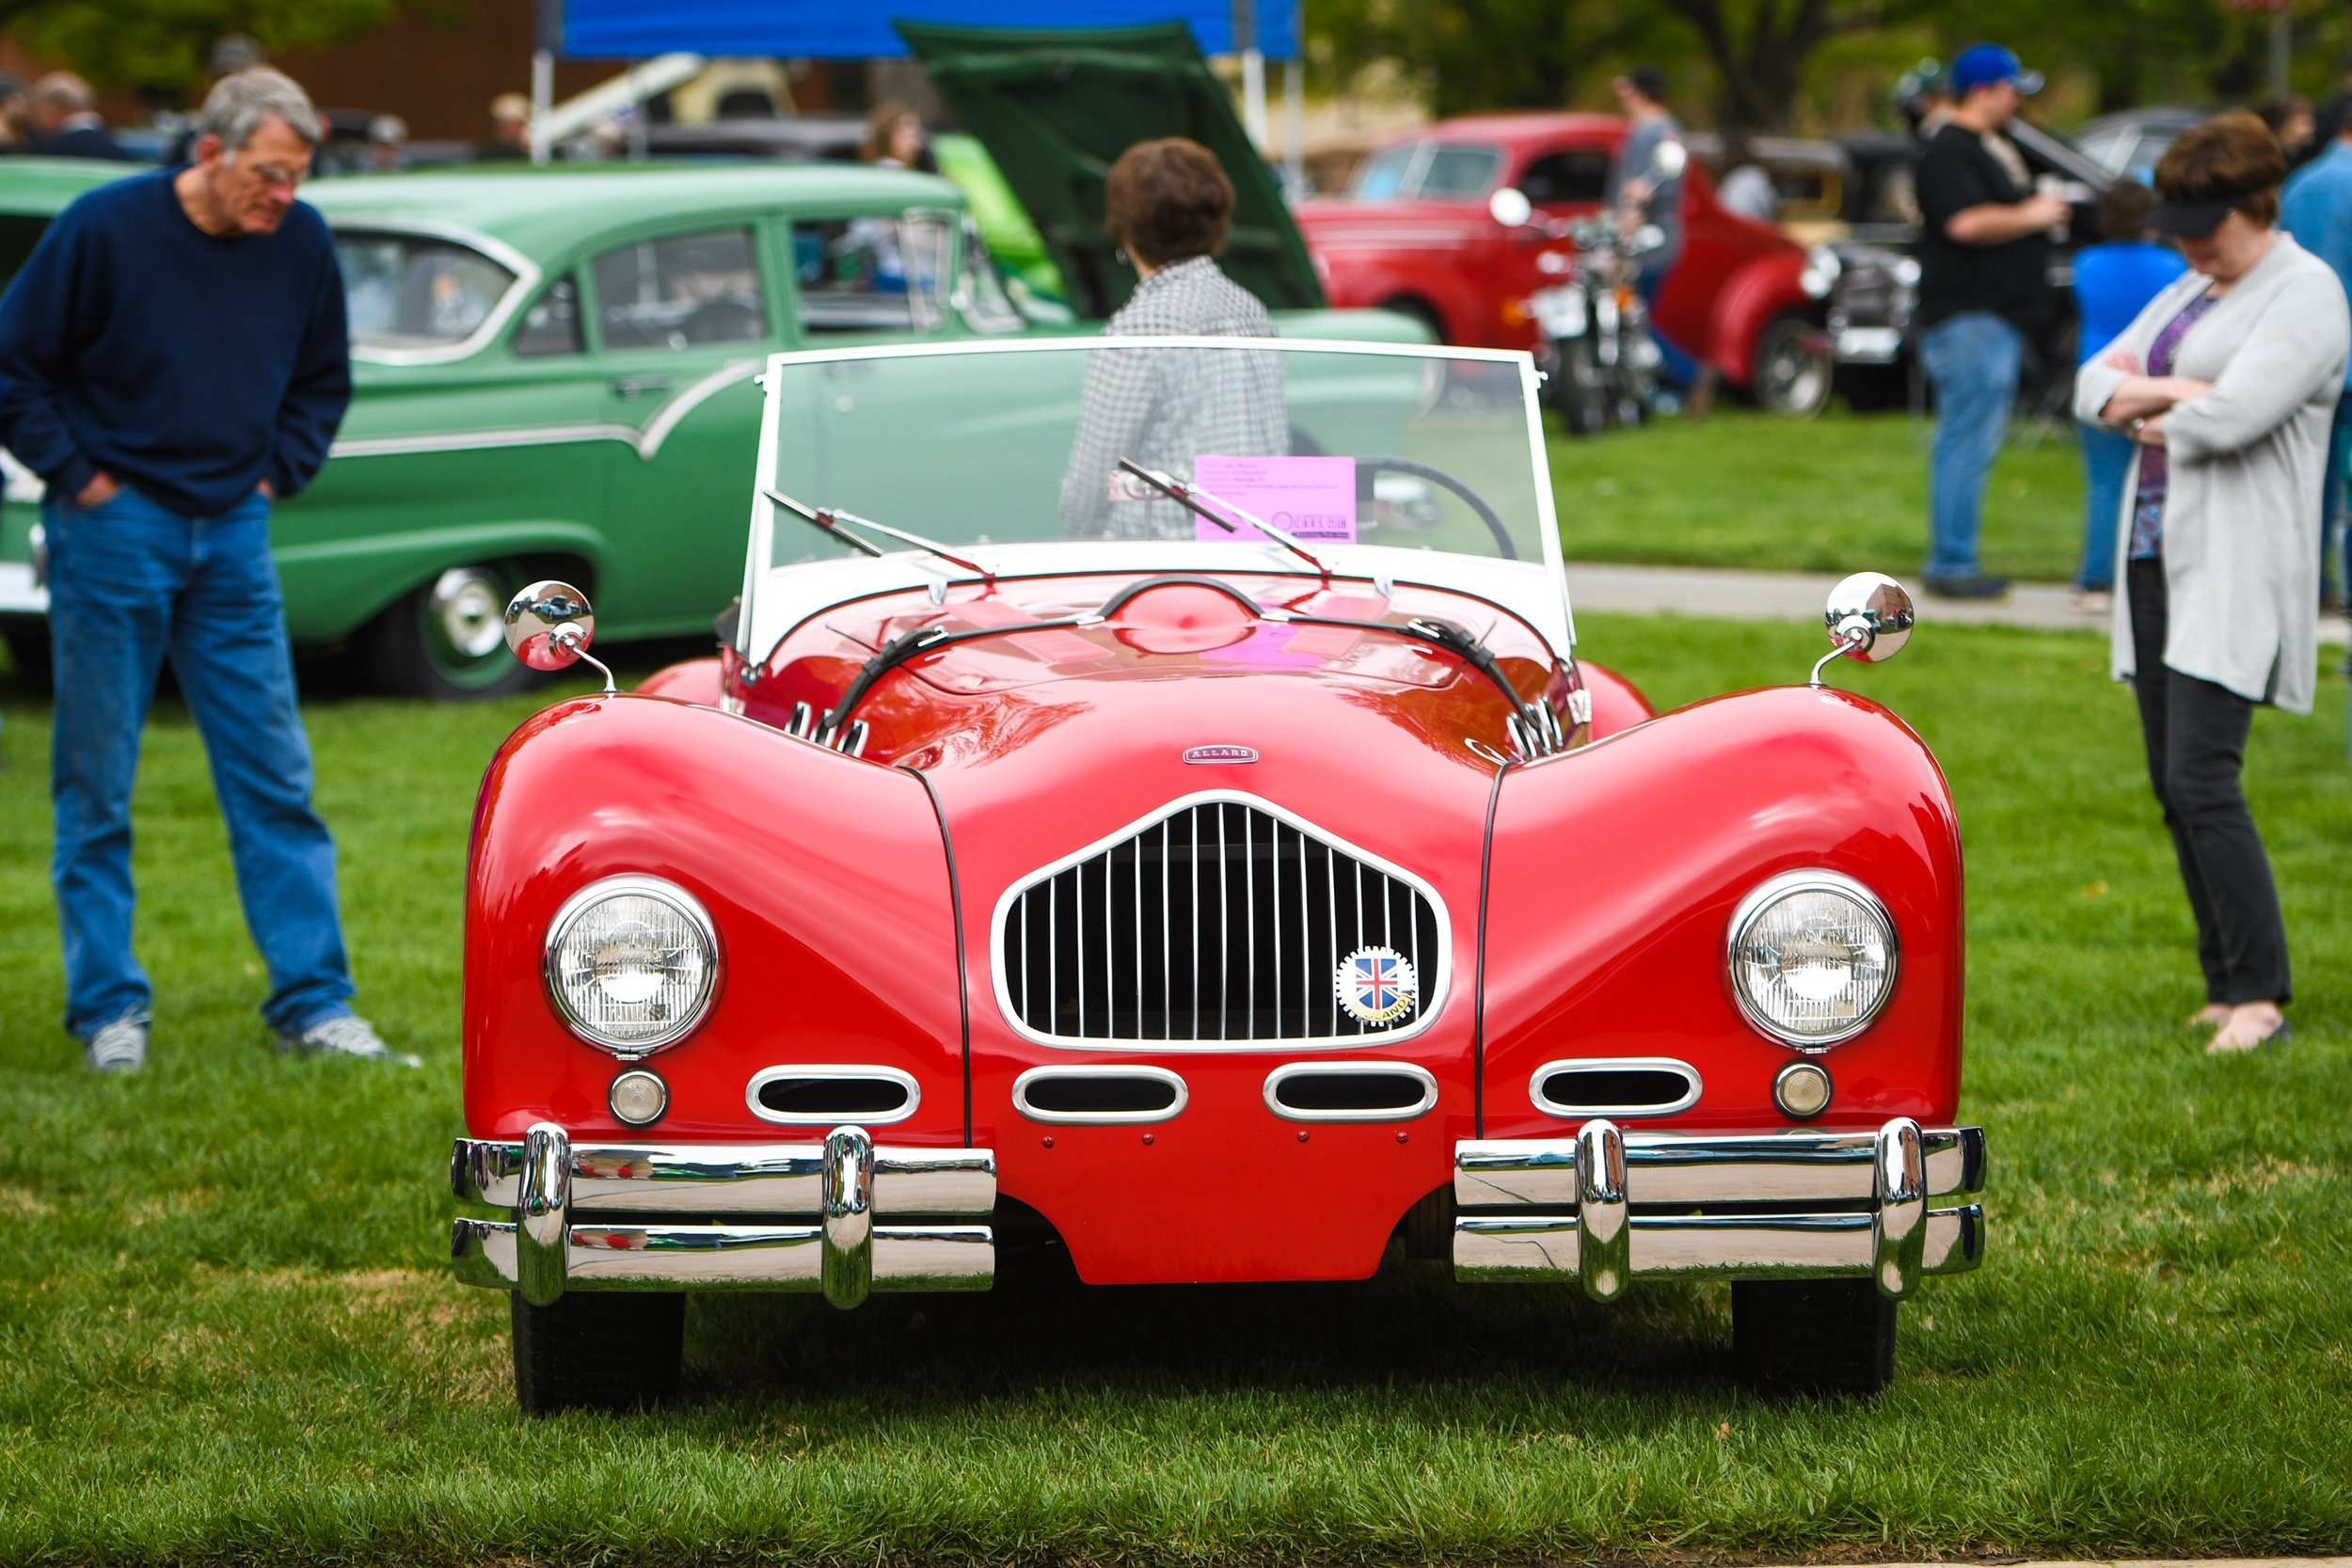 1951 Allard K2 on the show field at the McPherson College car show